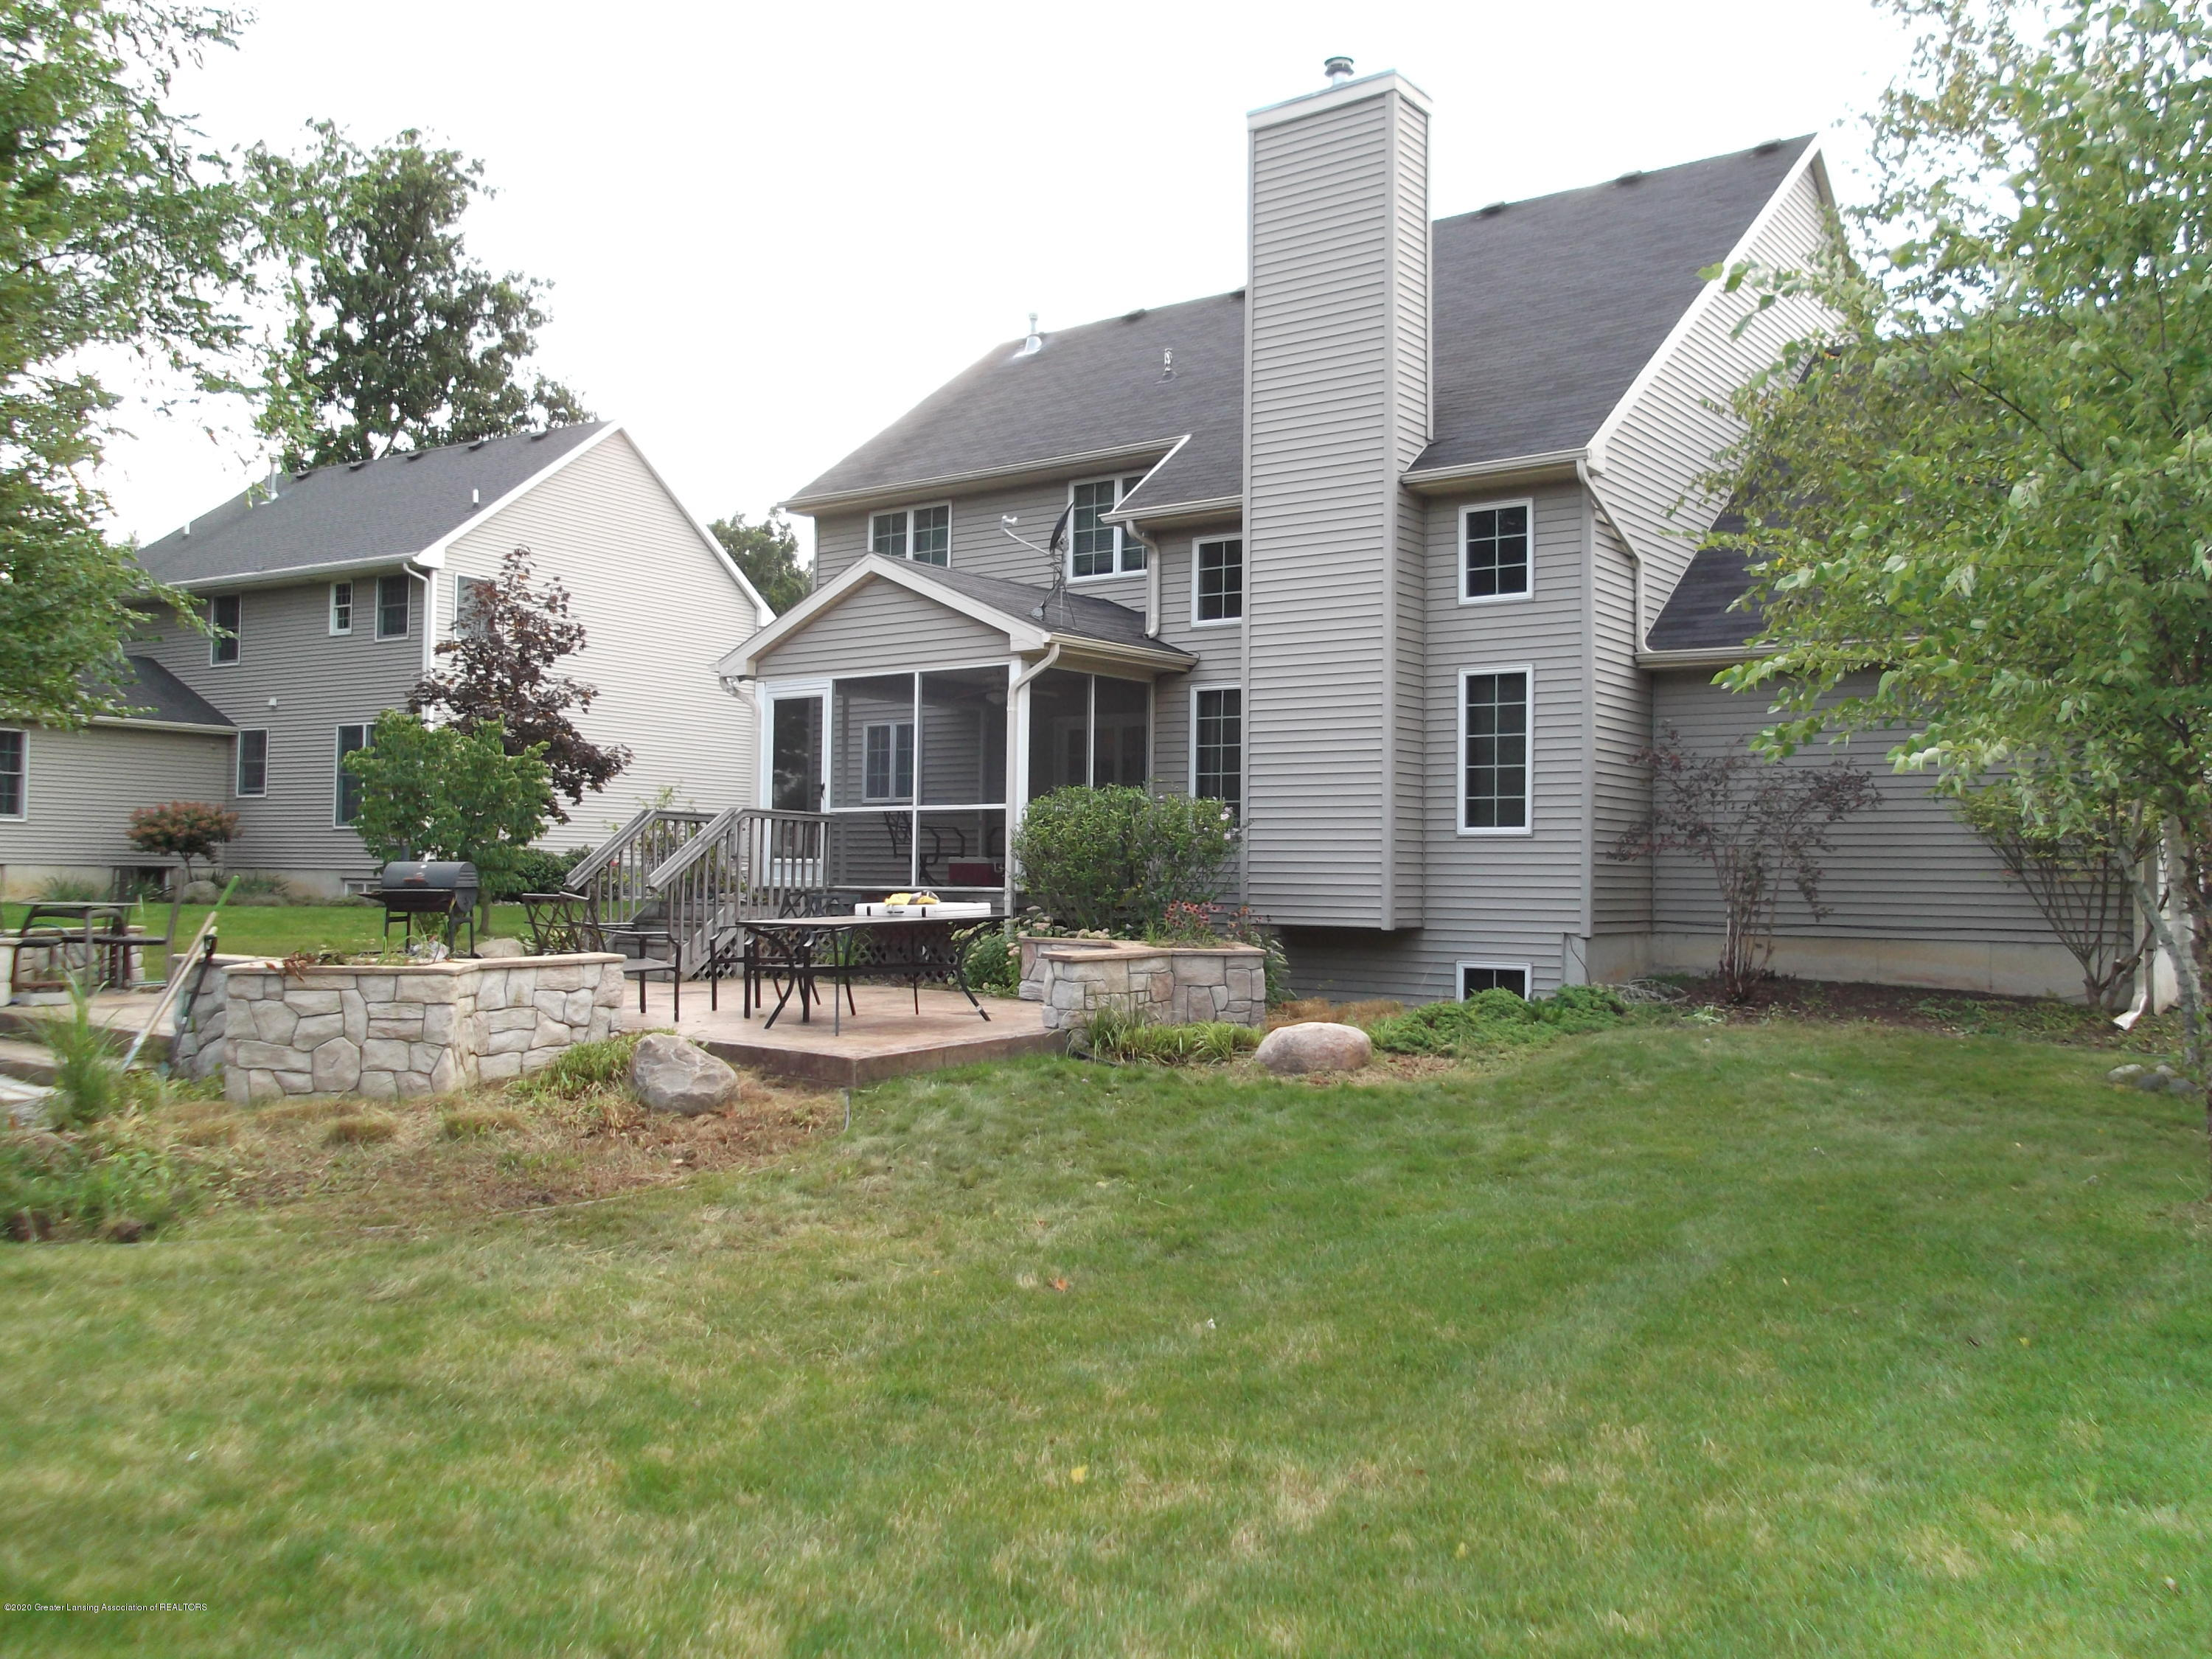 13295 Speckledwood Dr - Exterior view & yard - 17